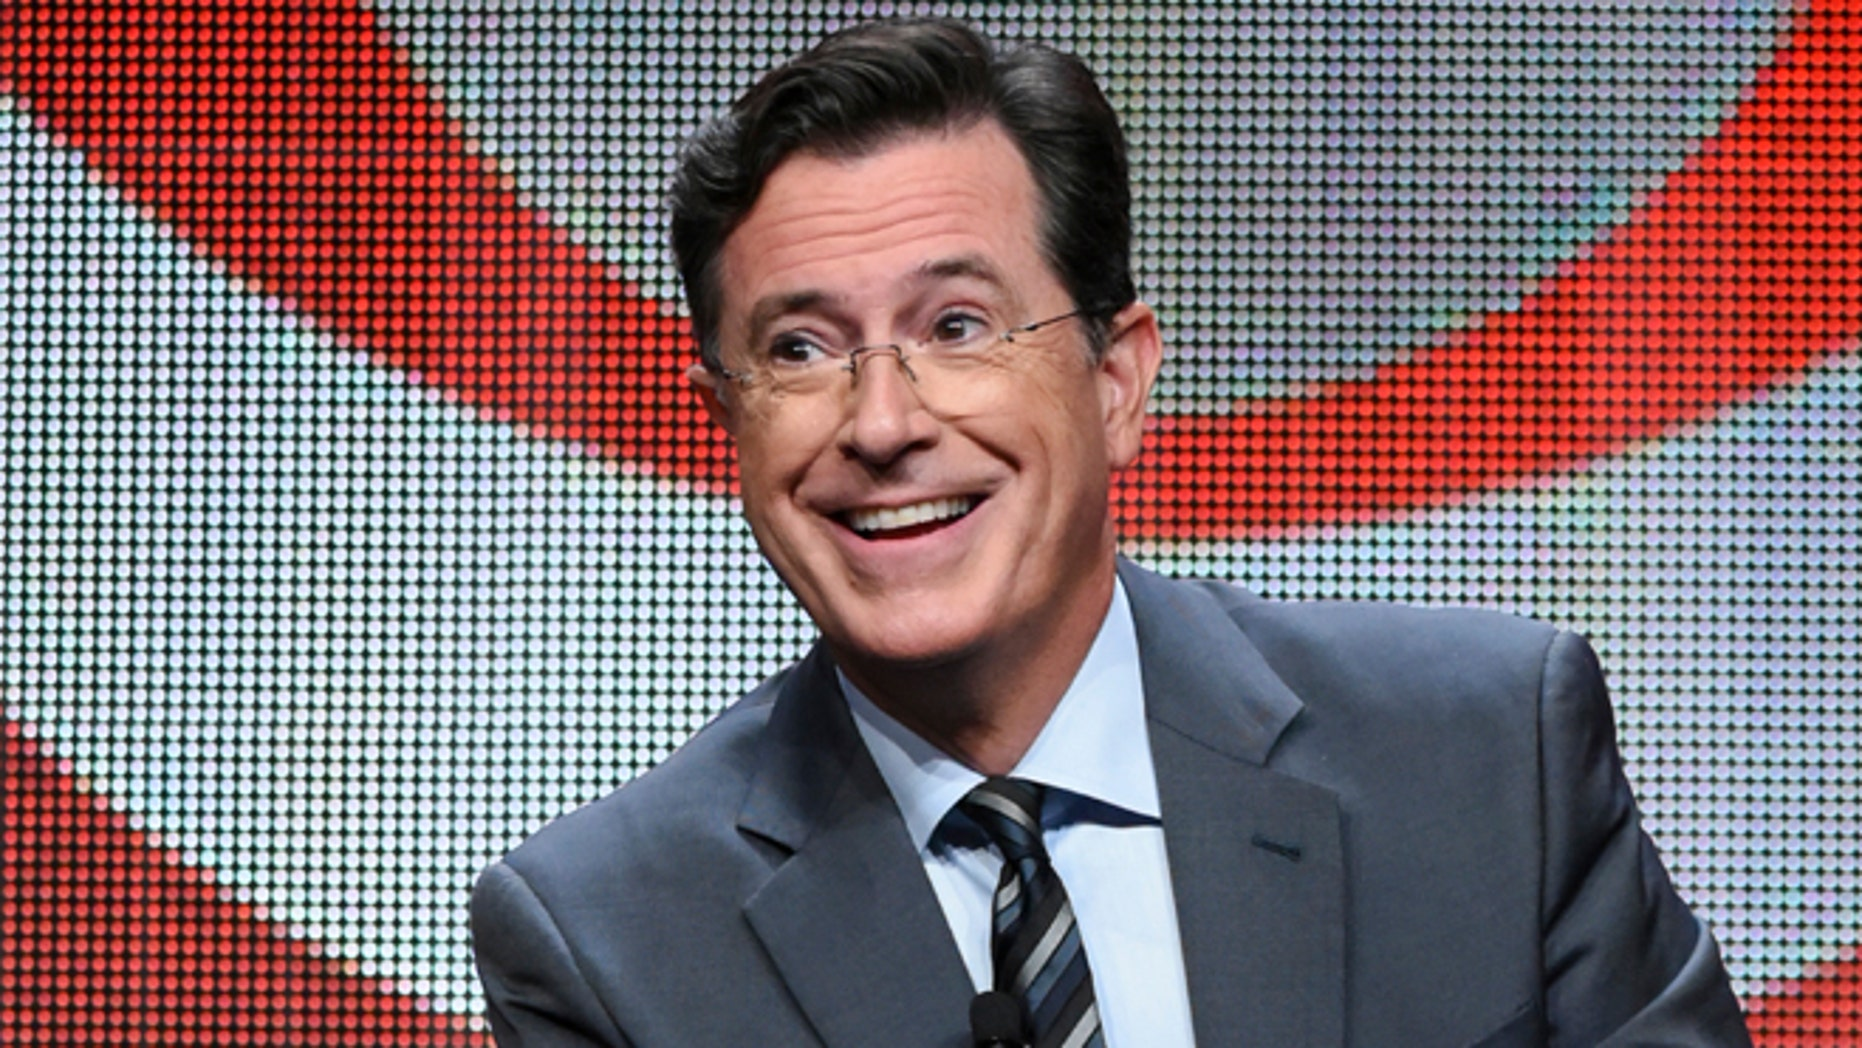 Stephen Colbert gleefully responded to insults hurled his way by President Trump.